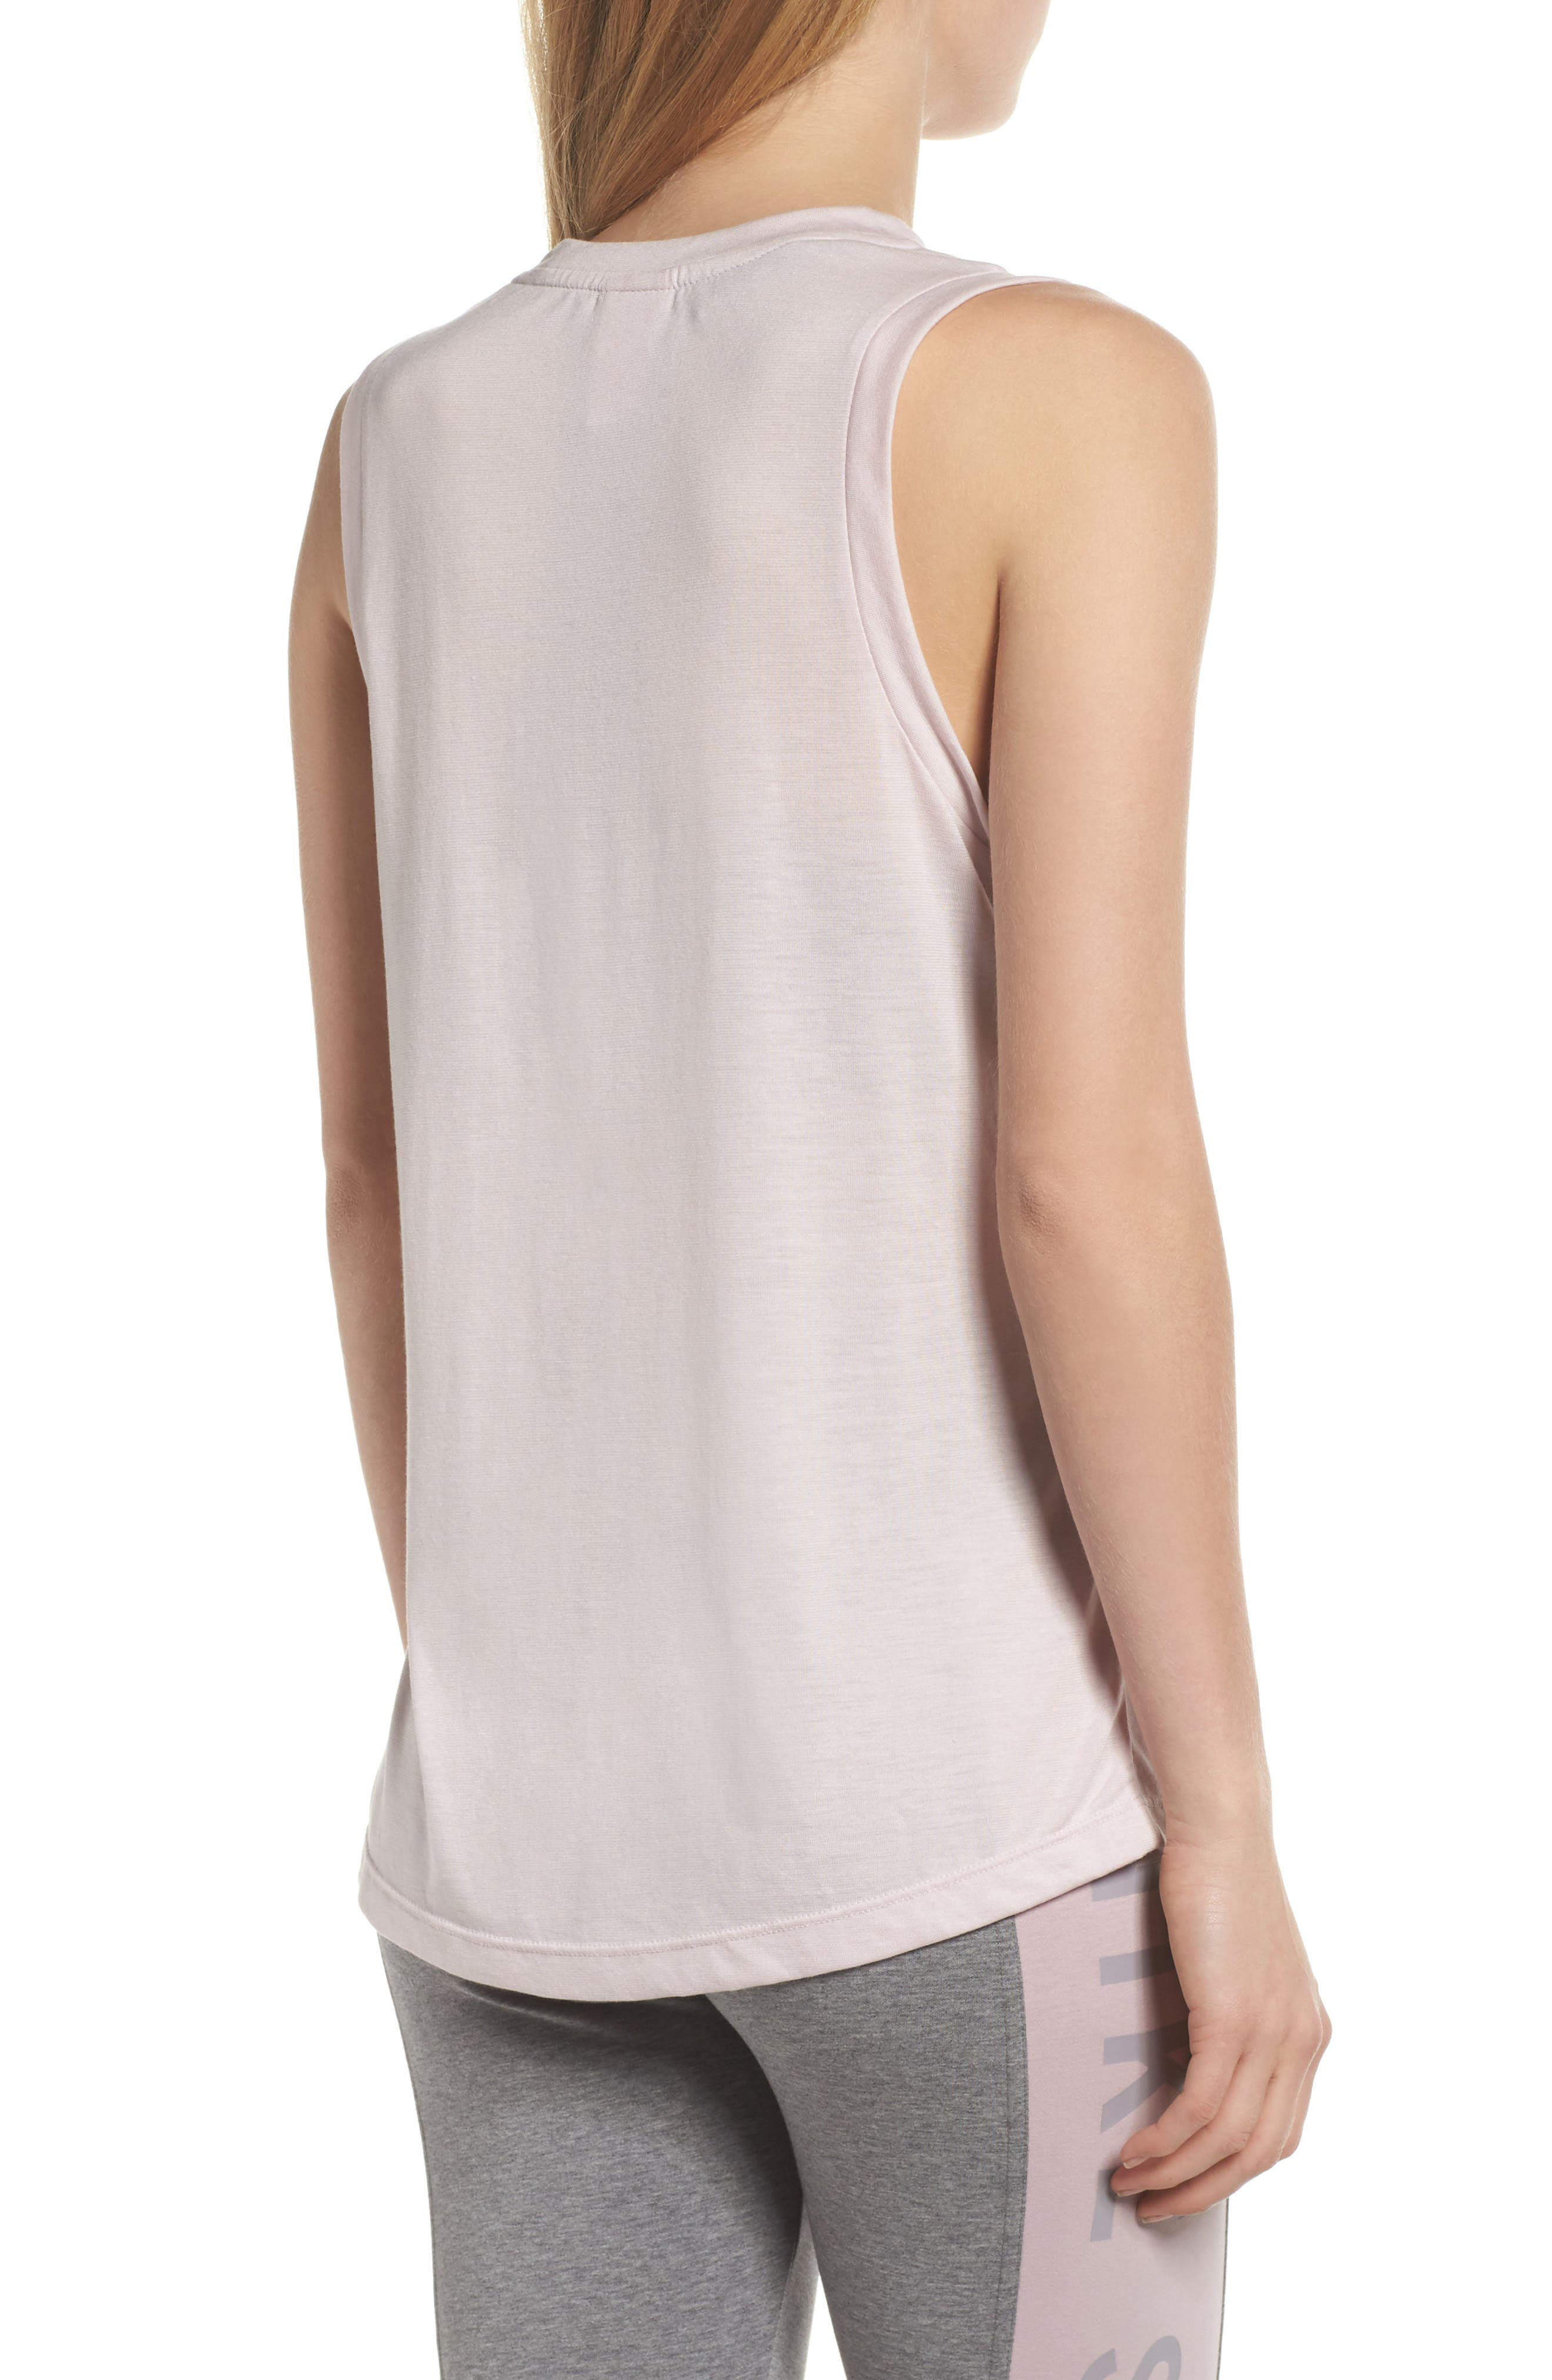 Sportswear Essential Women's Tank,                             Alternate thumbnail 2, color,                             Barely Rose/ Barely Rose